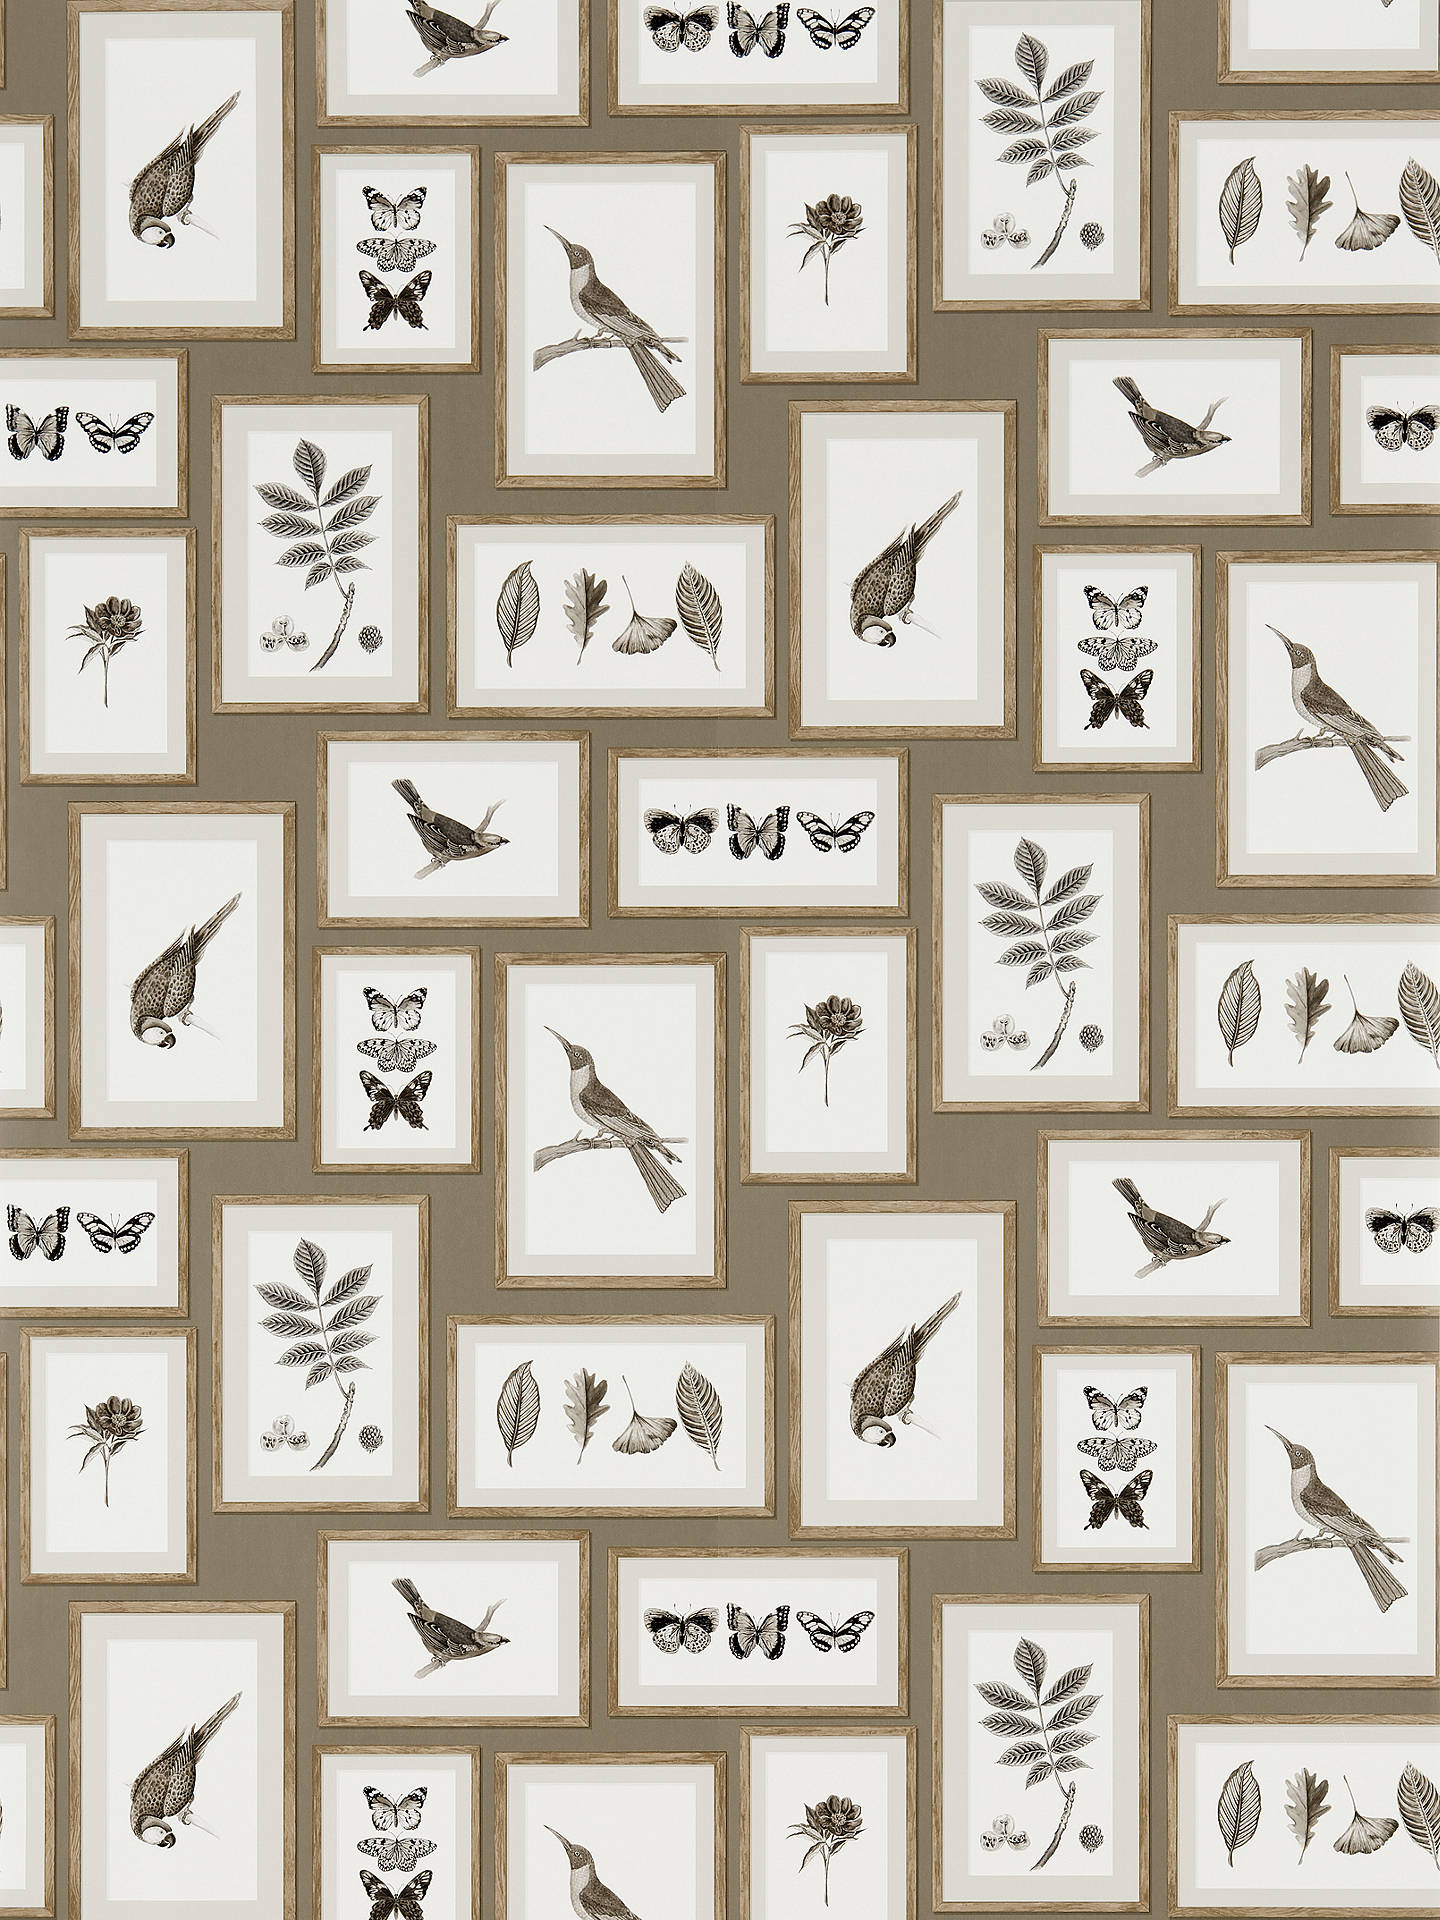 Buy Sanderson Picture Gallery Wallpaper, Taupe/Sepia, DVOY213397 Online at johnlewis.com